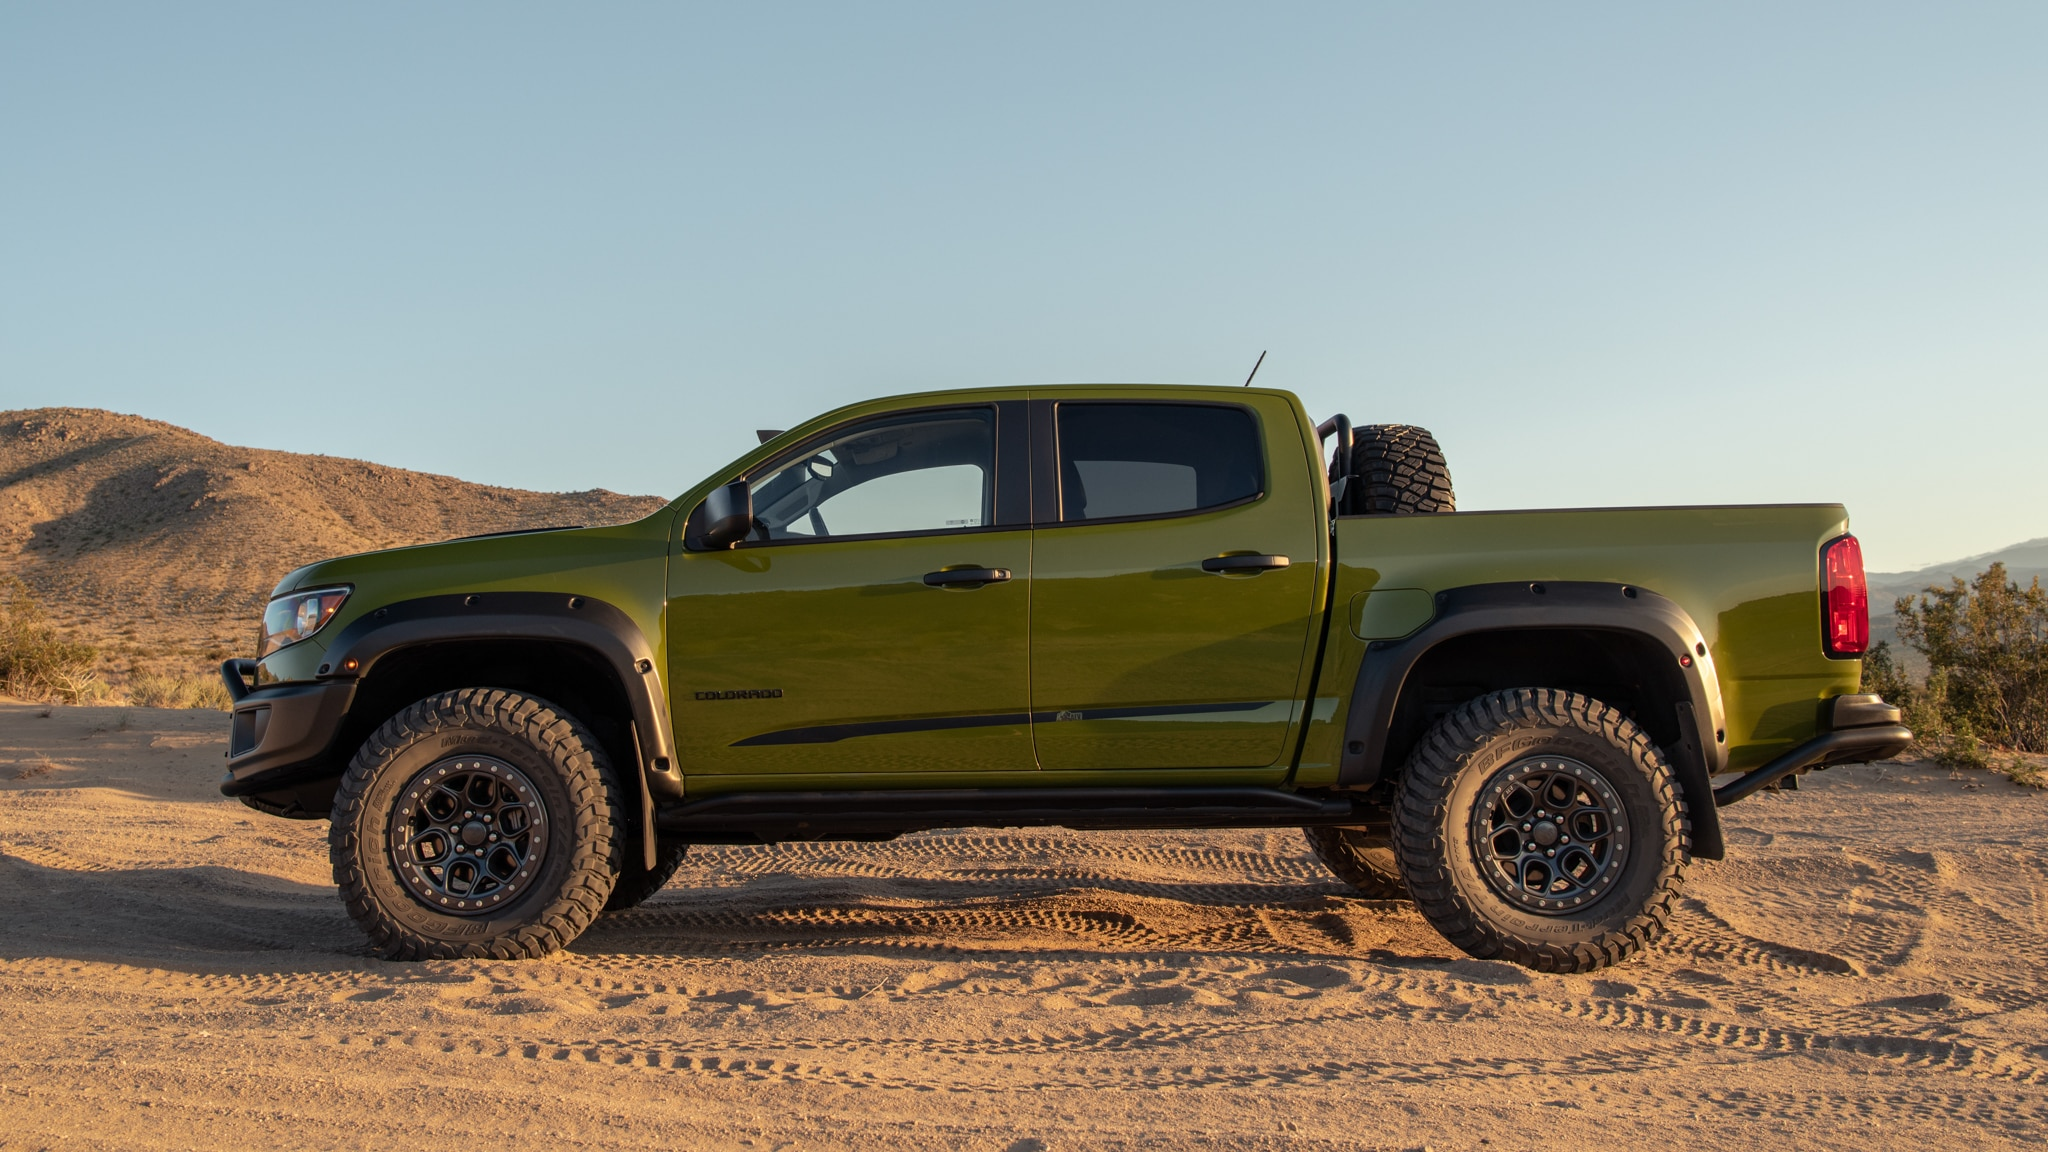 driven the ridiculous awesomely loaded 2020 chevrolet aev colorado zr2 bison 2020 chevrolet aev colorado zr2 bison